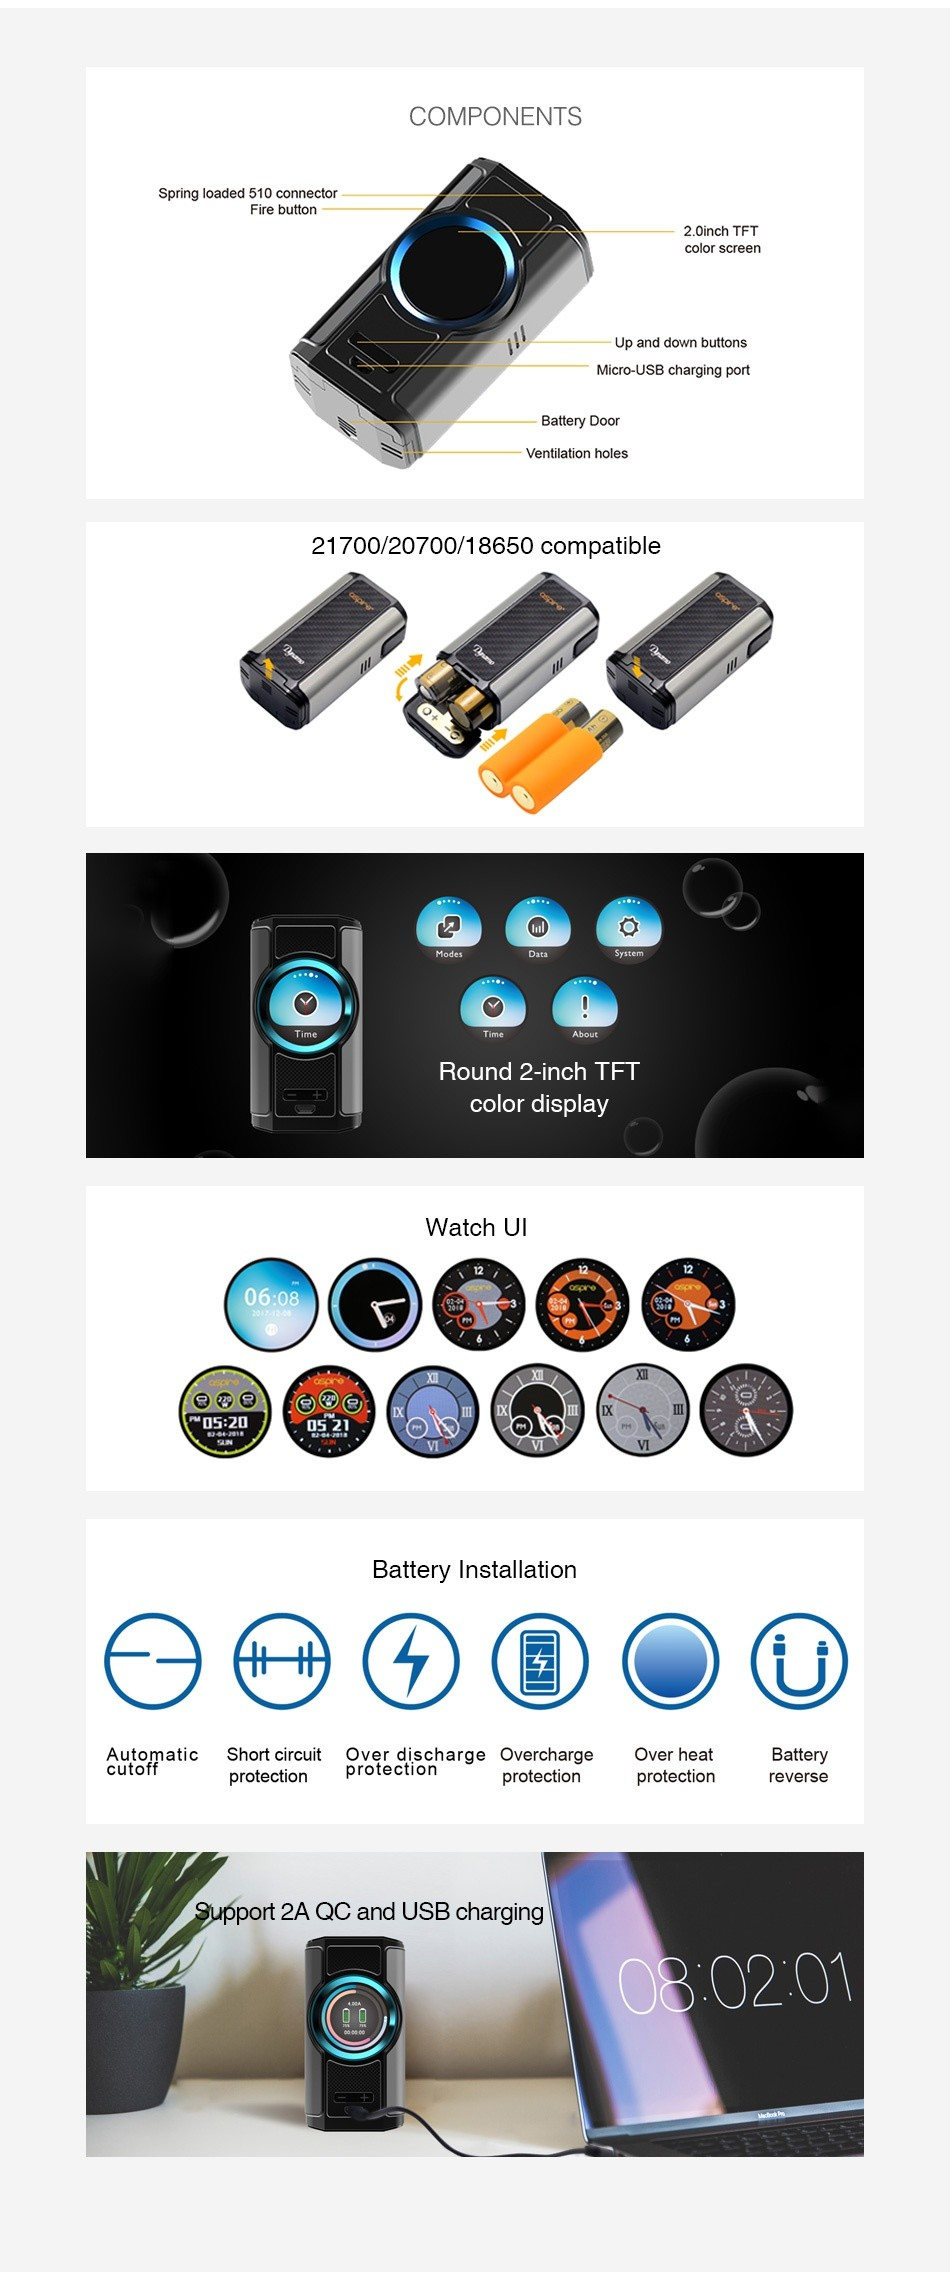 Aspire Dynamo 220W TC Box MOD COMPONENTS pring loaded 510 connector Up and down buttons 21700 20700 18650 compatible 2 o Round 2 inch TFT Watch Ul 06 08 Battery Installation      matic Short circuit Over discharge Overcharge Over heat Batter protection protection reverse support 2A QC and USB charging 030201